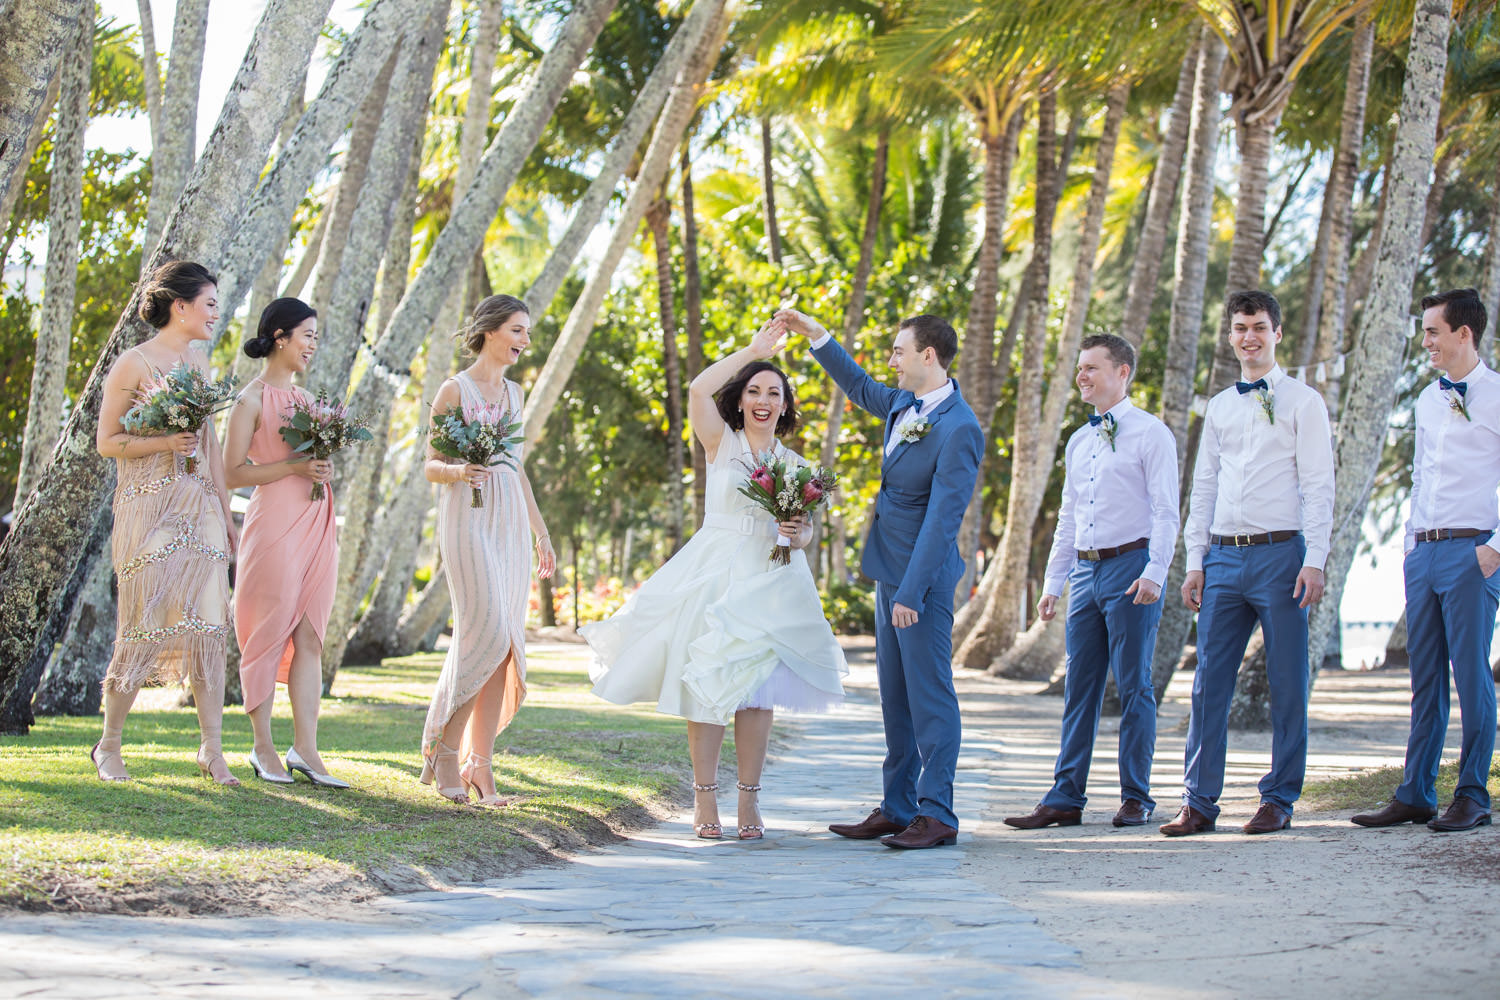 22 Port Douglas Wedding Photographer Catseye Productions Rathmell blog 044A6794